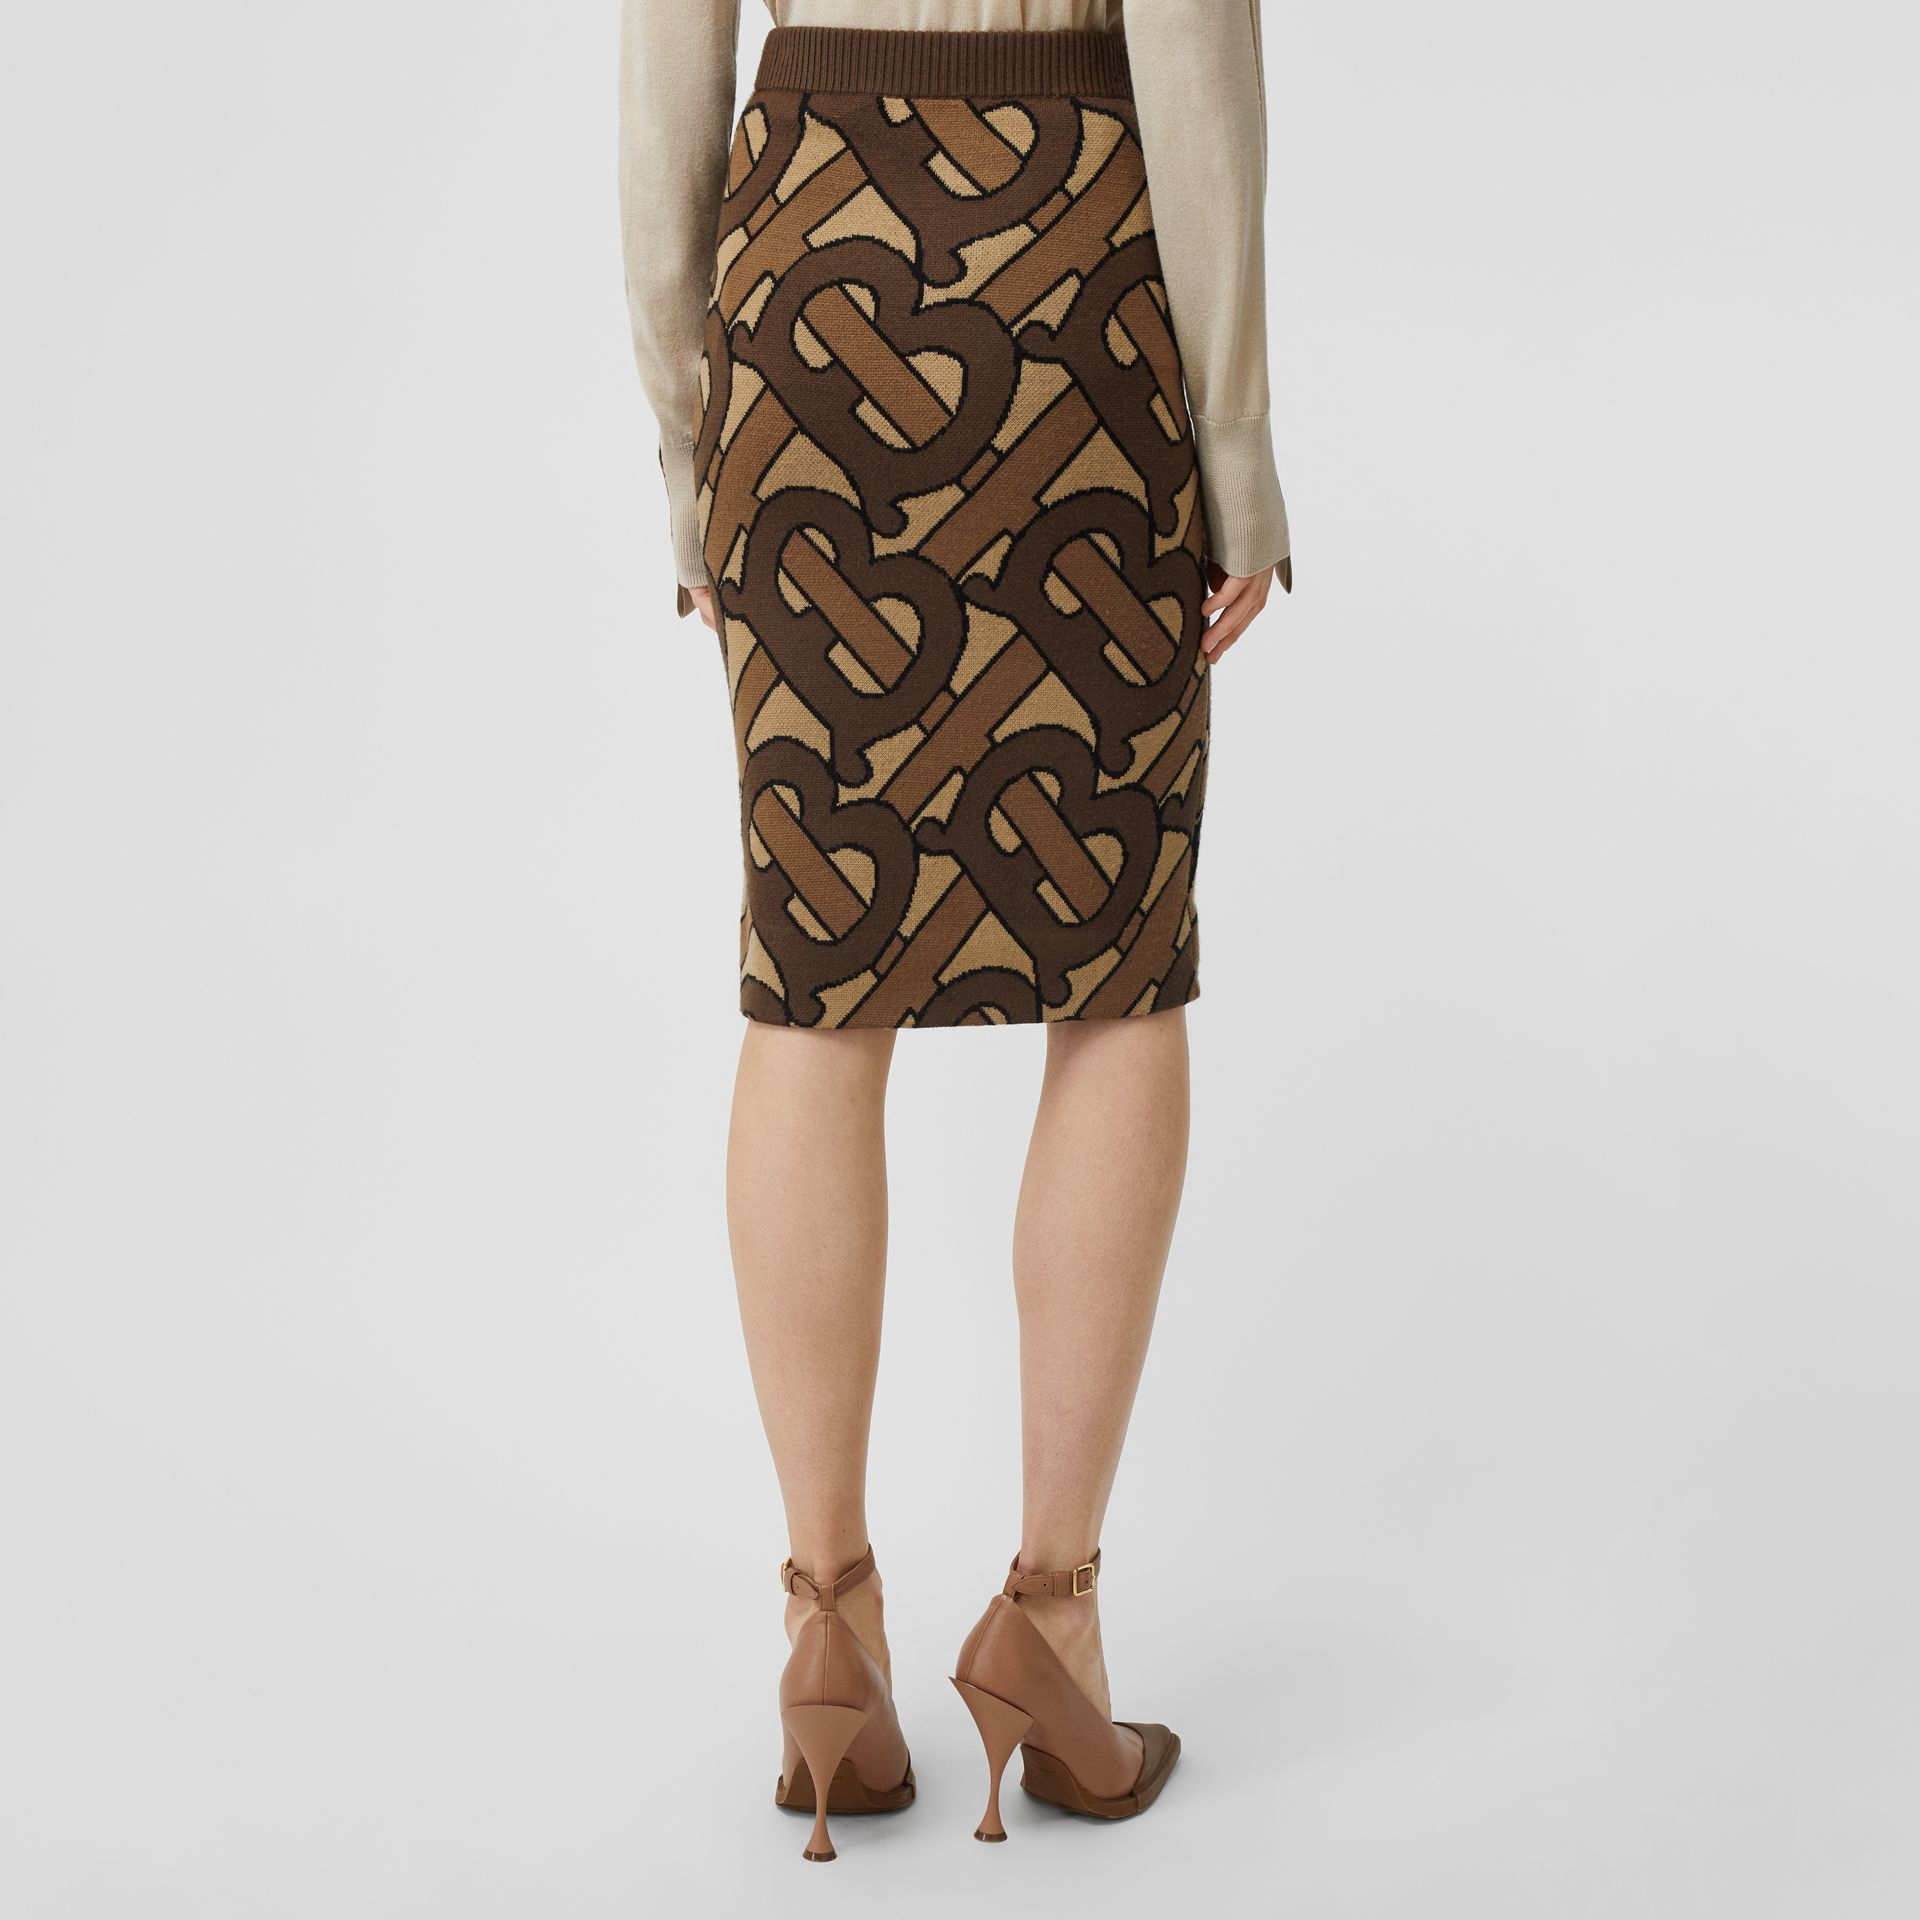 Monogram Intarsia Wool Pencil Skirt in Bridle Brown - Women | Burberry Canada - gallery image 2